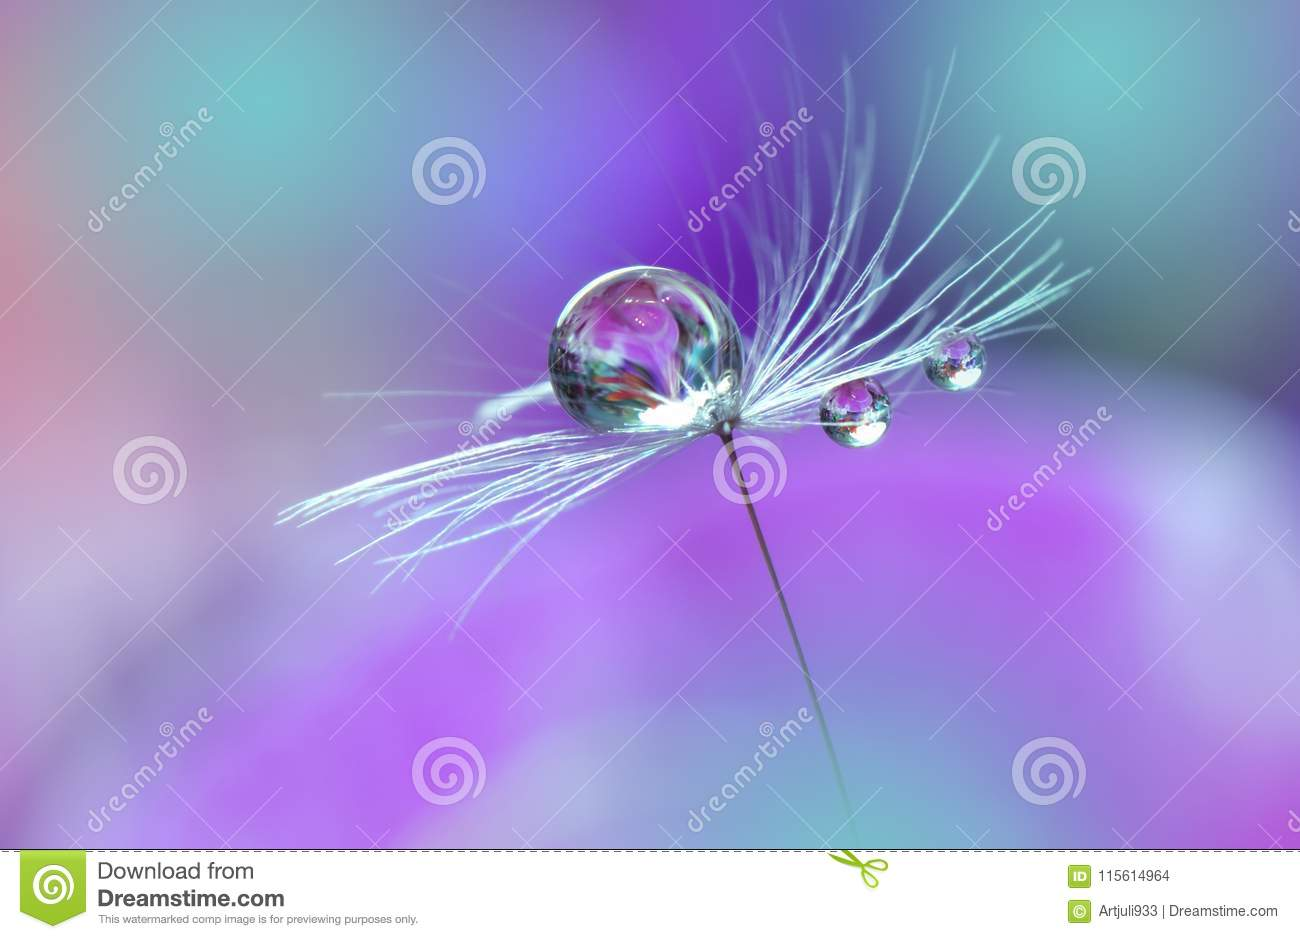 Beautiful Violet Nature Background Art Photography Floral Design Colorful Abstract Macro Water Drop Relaxation Flowers Wallpaper Stock Photo Image Of Banner Artistic 115614964